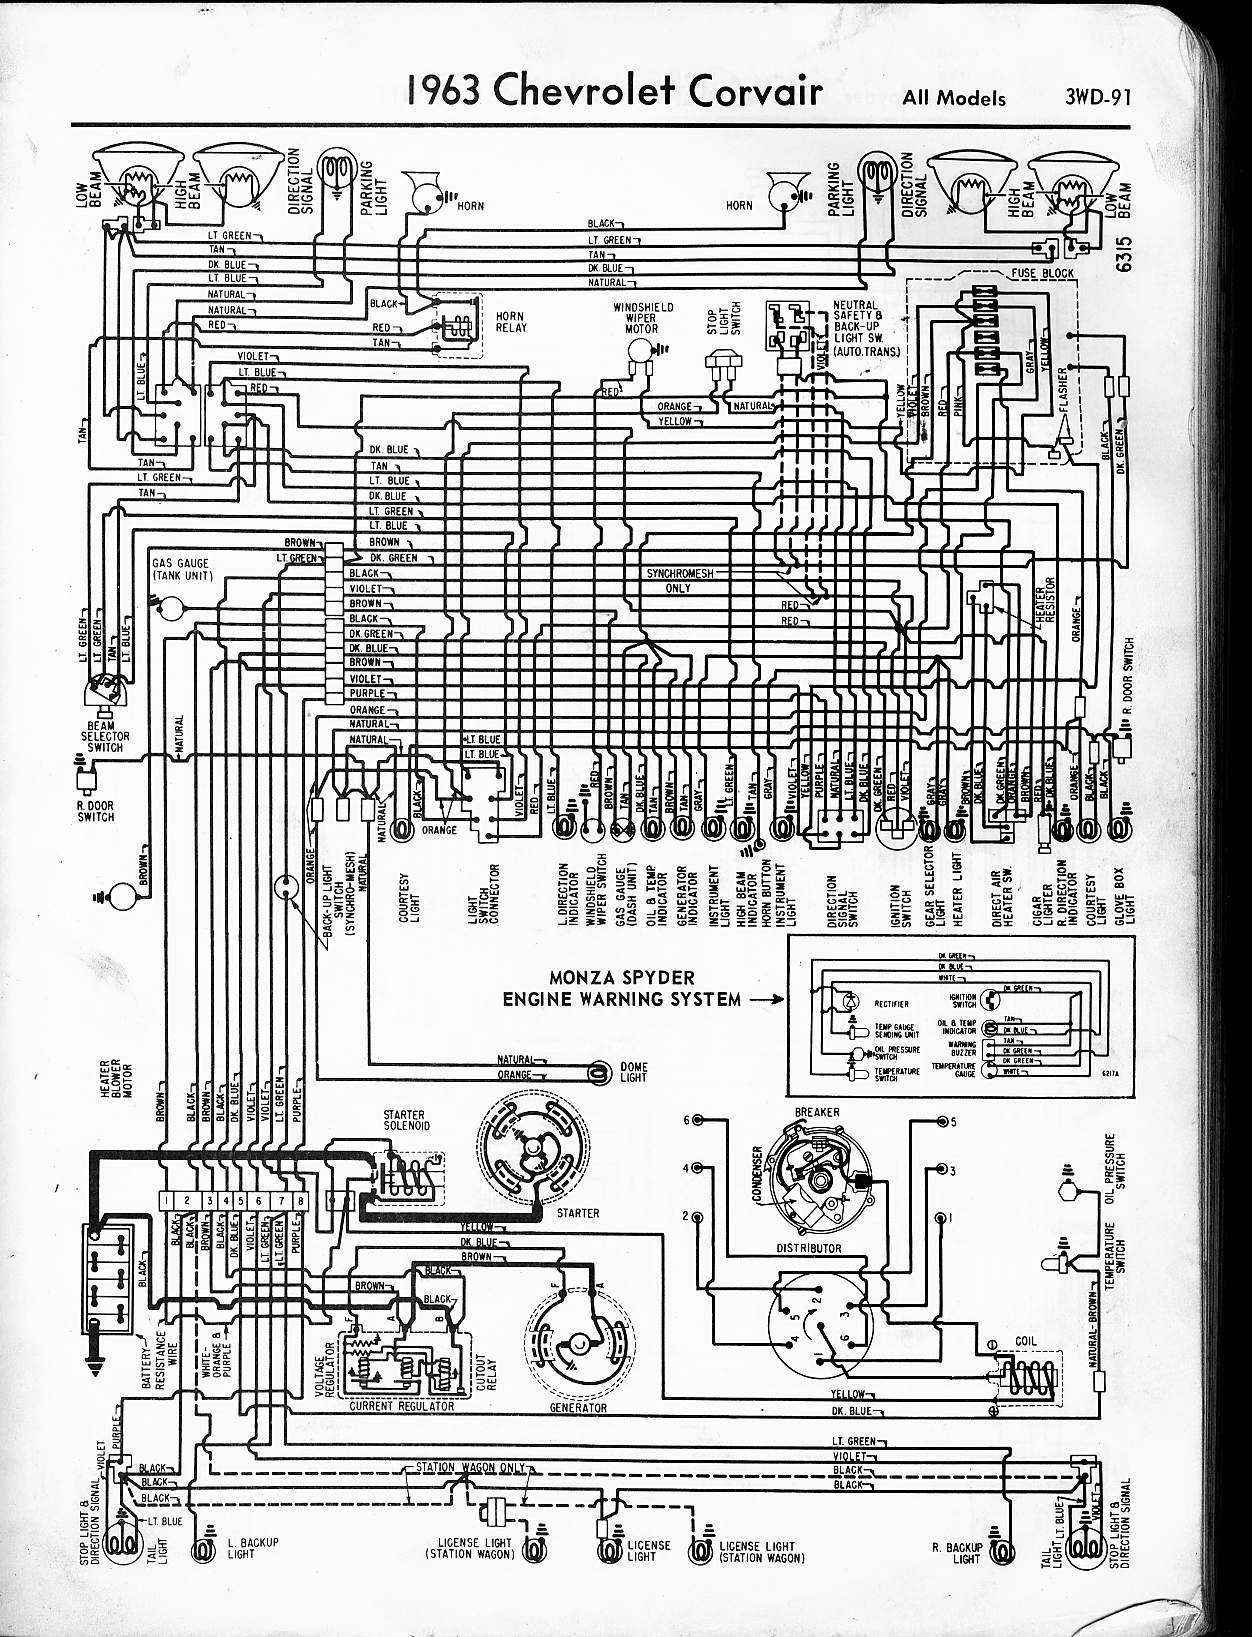 Wiring Diagram For 1966 Chevy Nova Starting Know About Wiring 65 Nova  Headlight Wiring Diagram 65 Nova Wiring Diagram